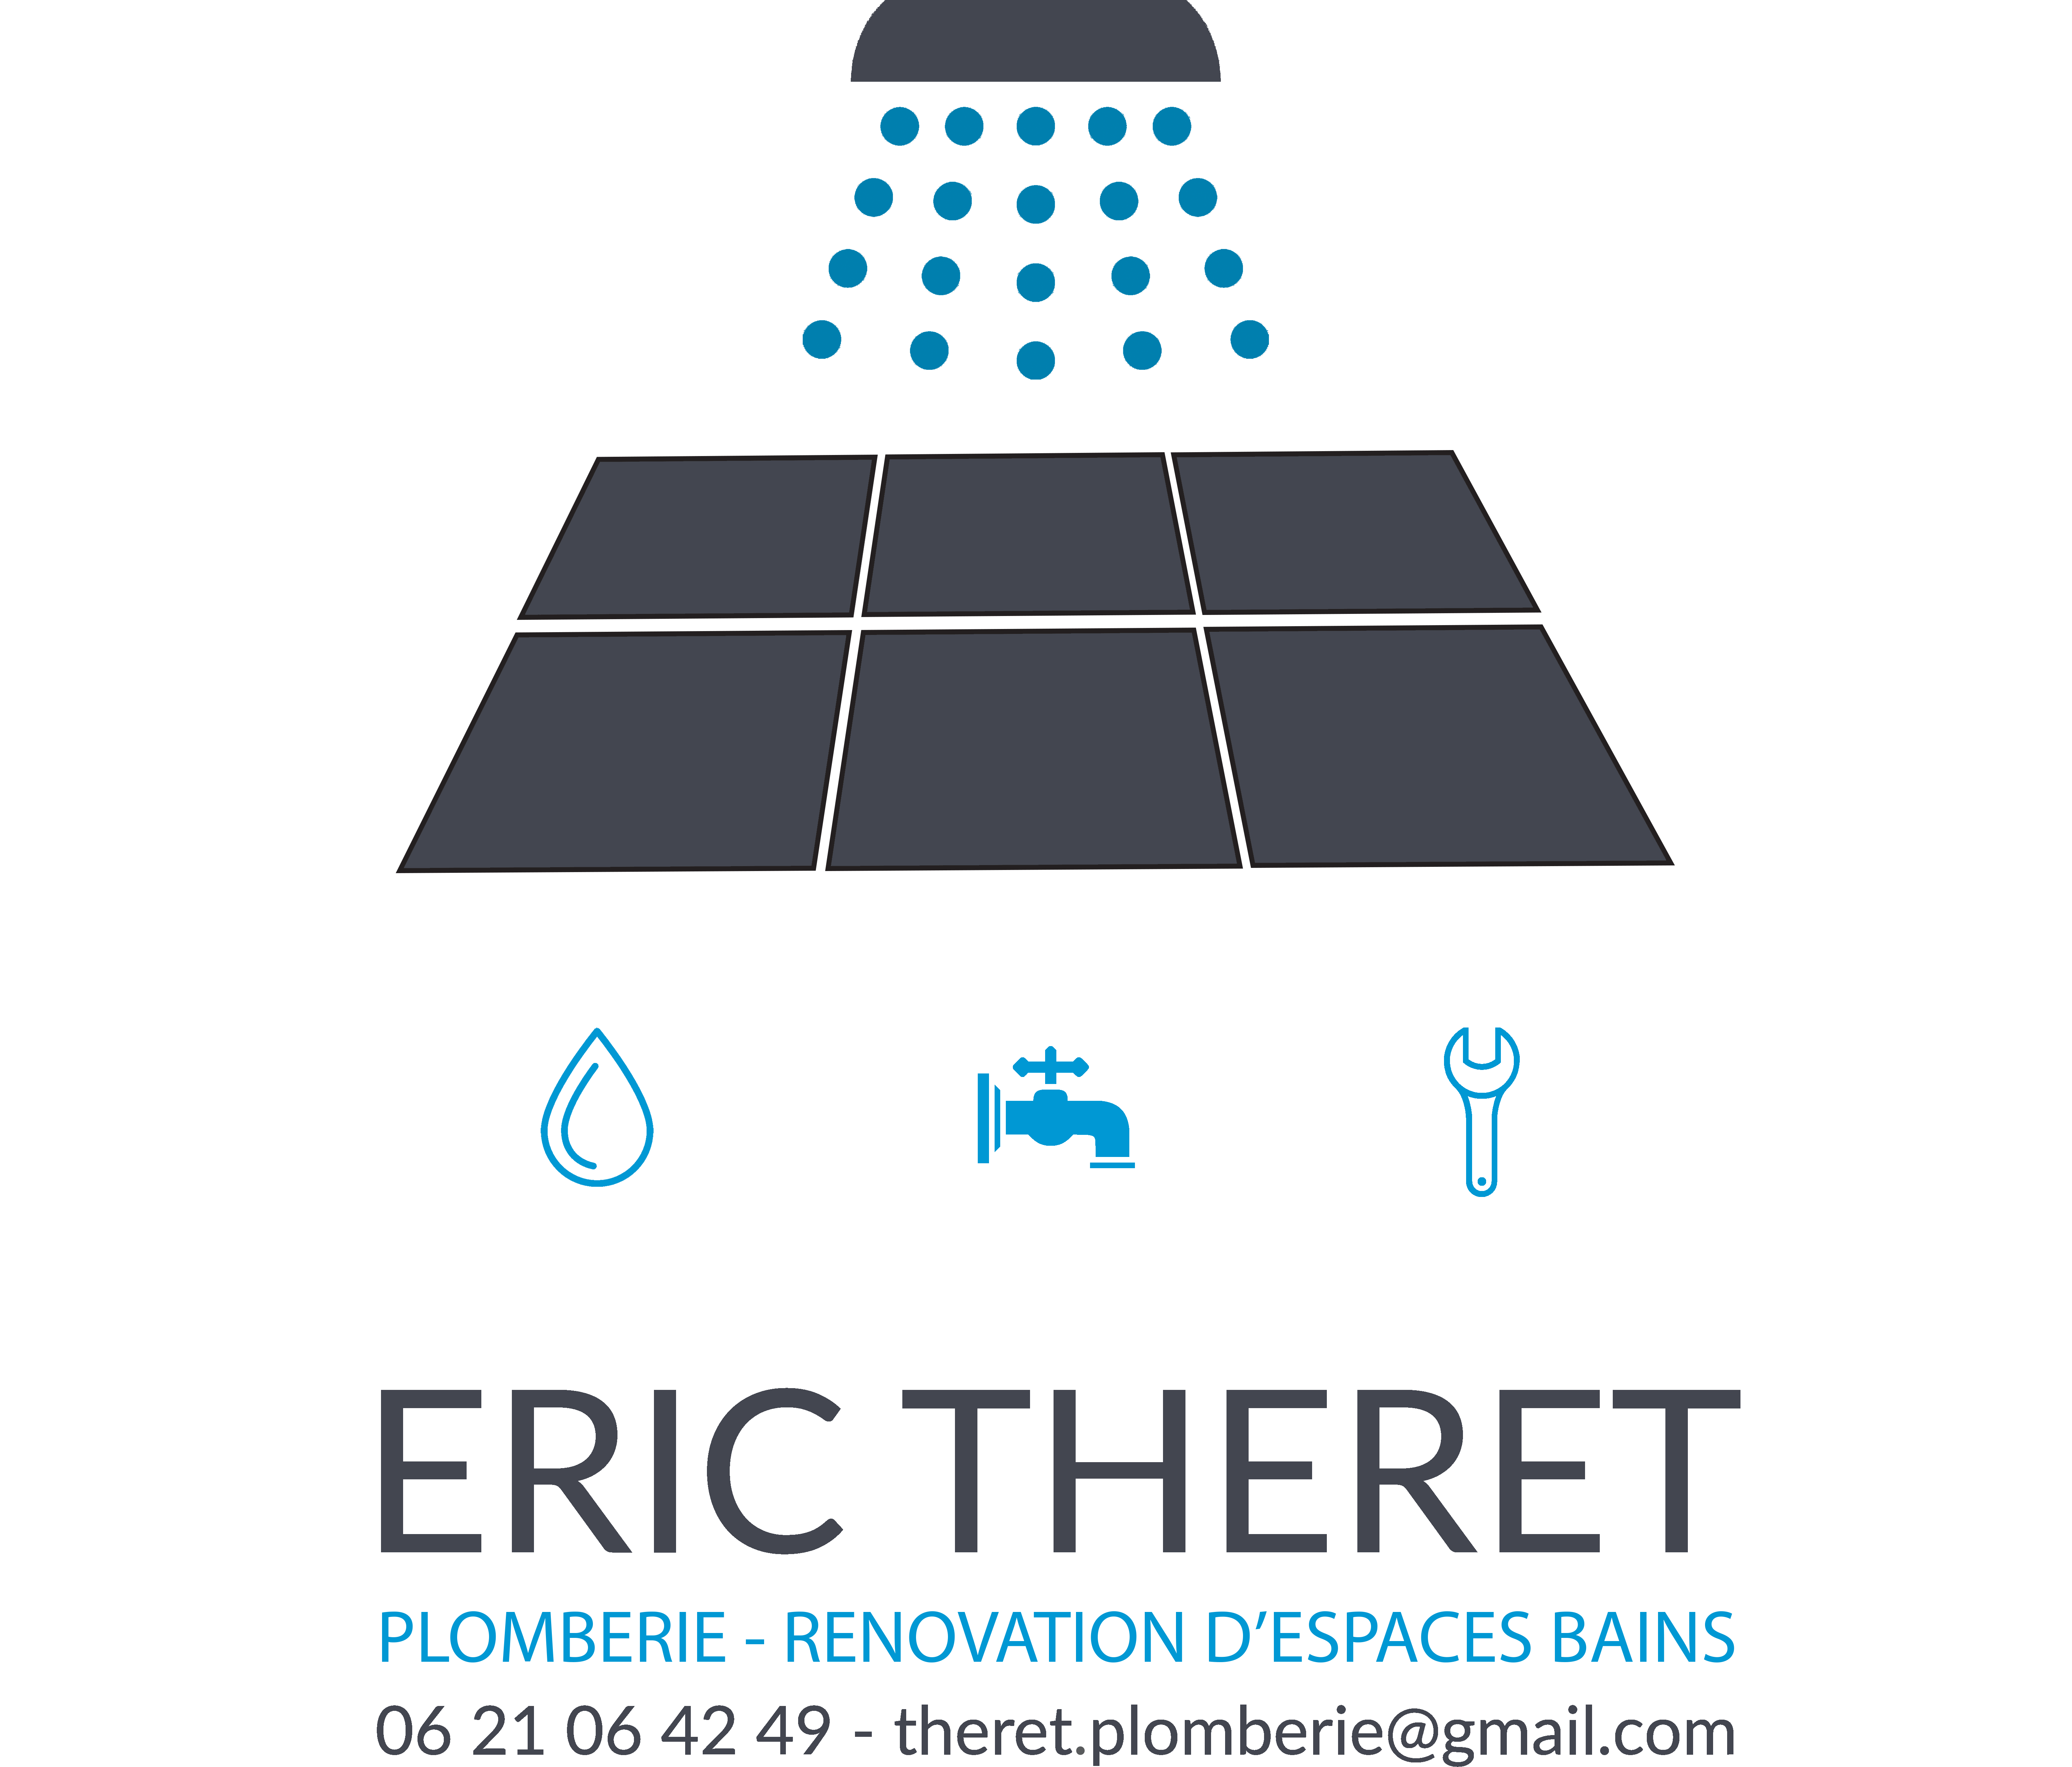 Eric Theret